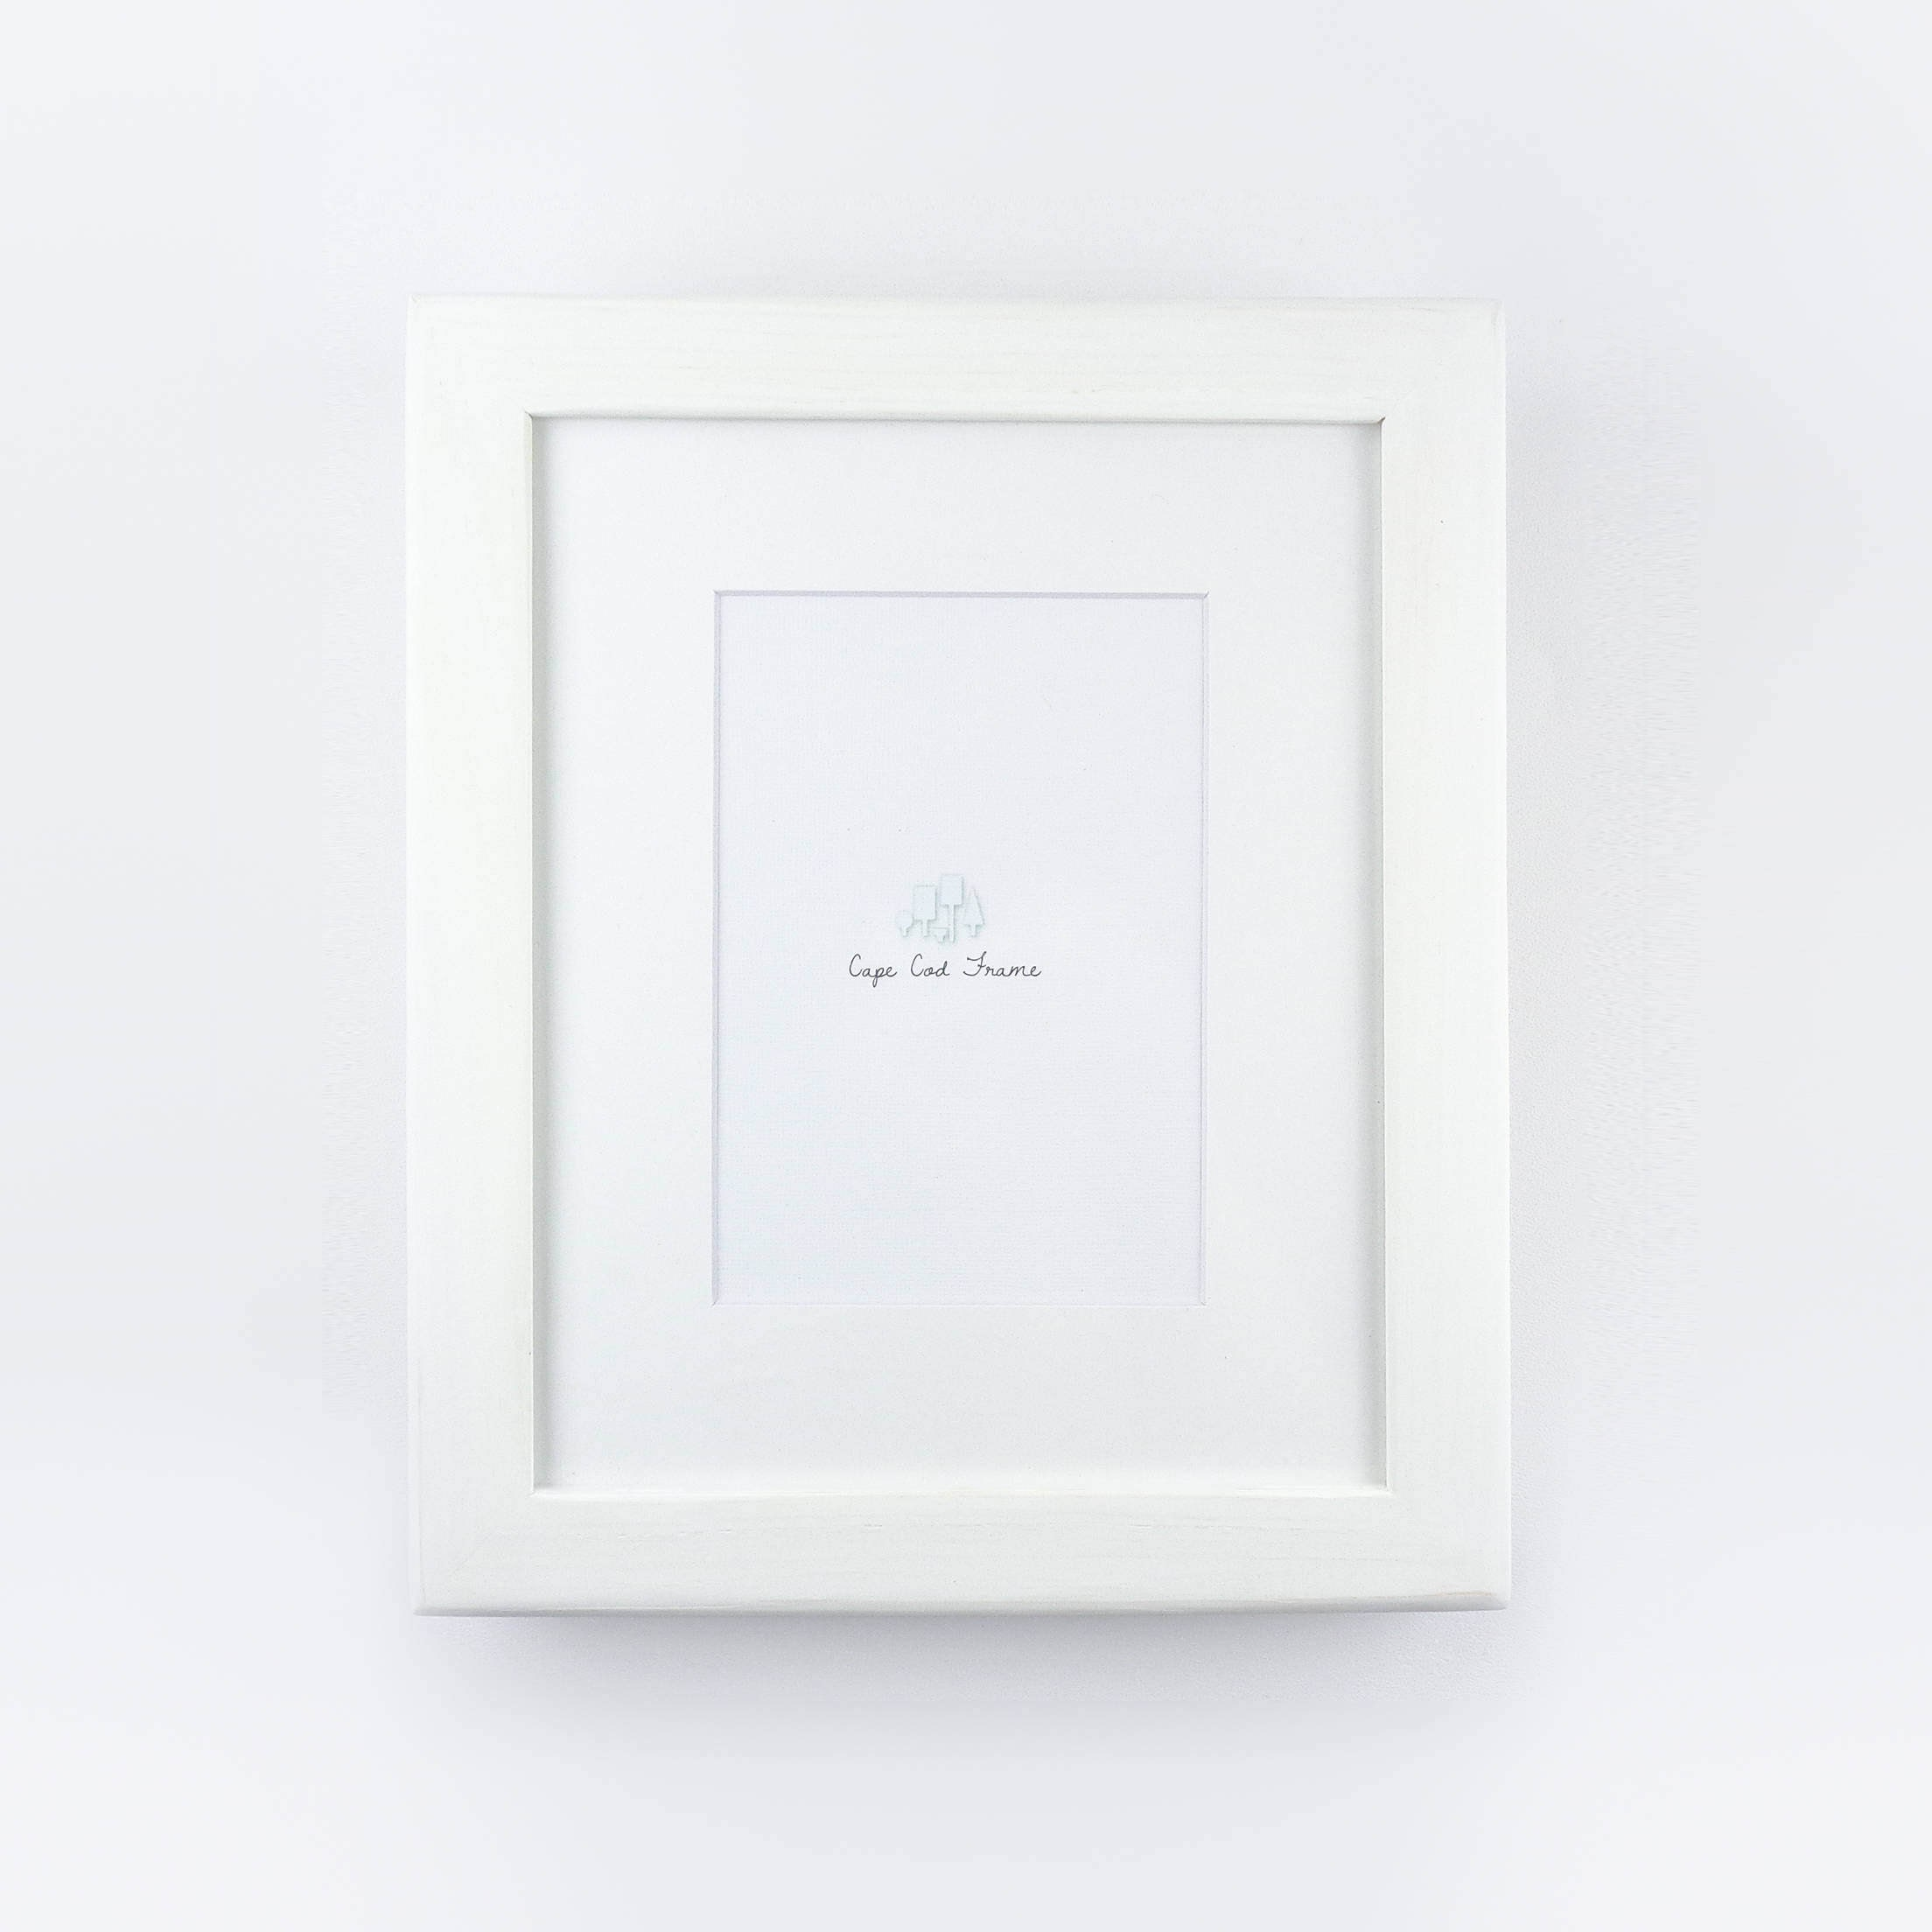 White wooden picture frame with softened edge rustic frame 5x7 white mat sold by capecodframe jeuxipadfo Choice Image